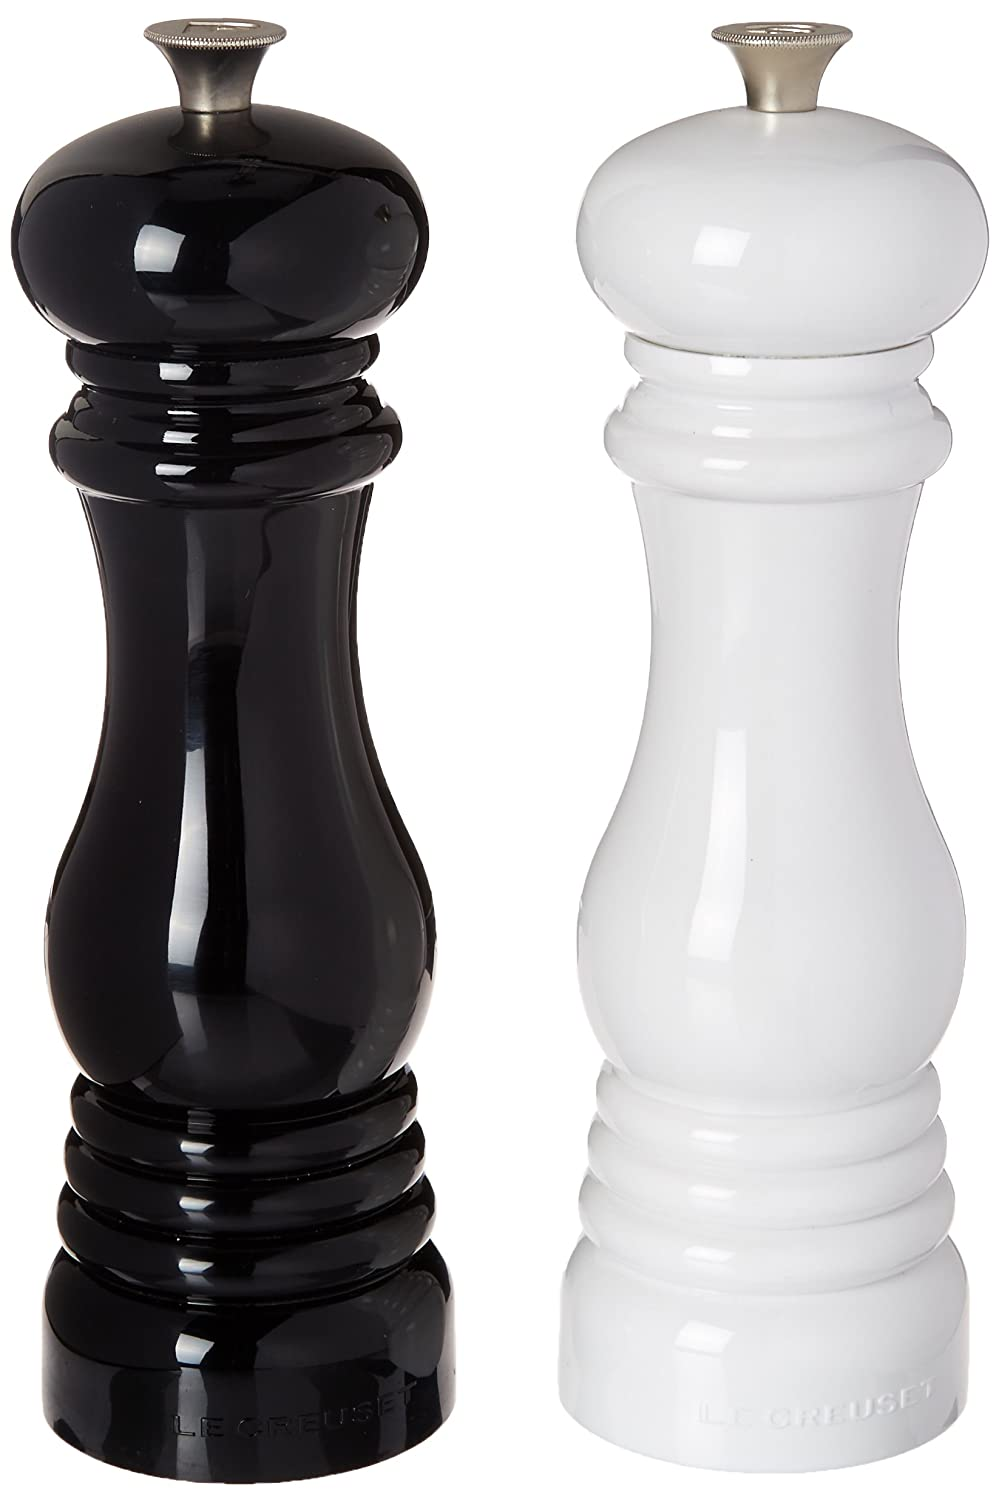 le creuset salt and pepper mill set 8 inch black and white ebay. Black Bedroom Furniture Sets. Home Design Ideas